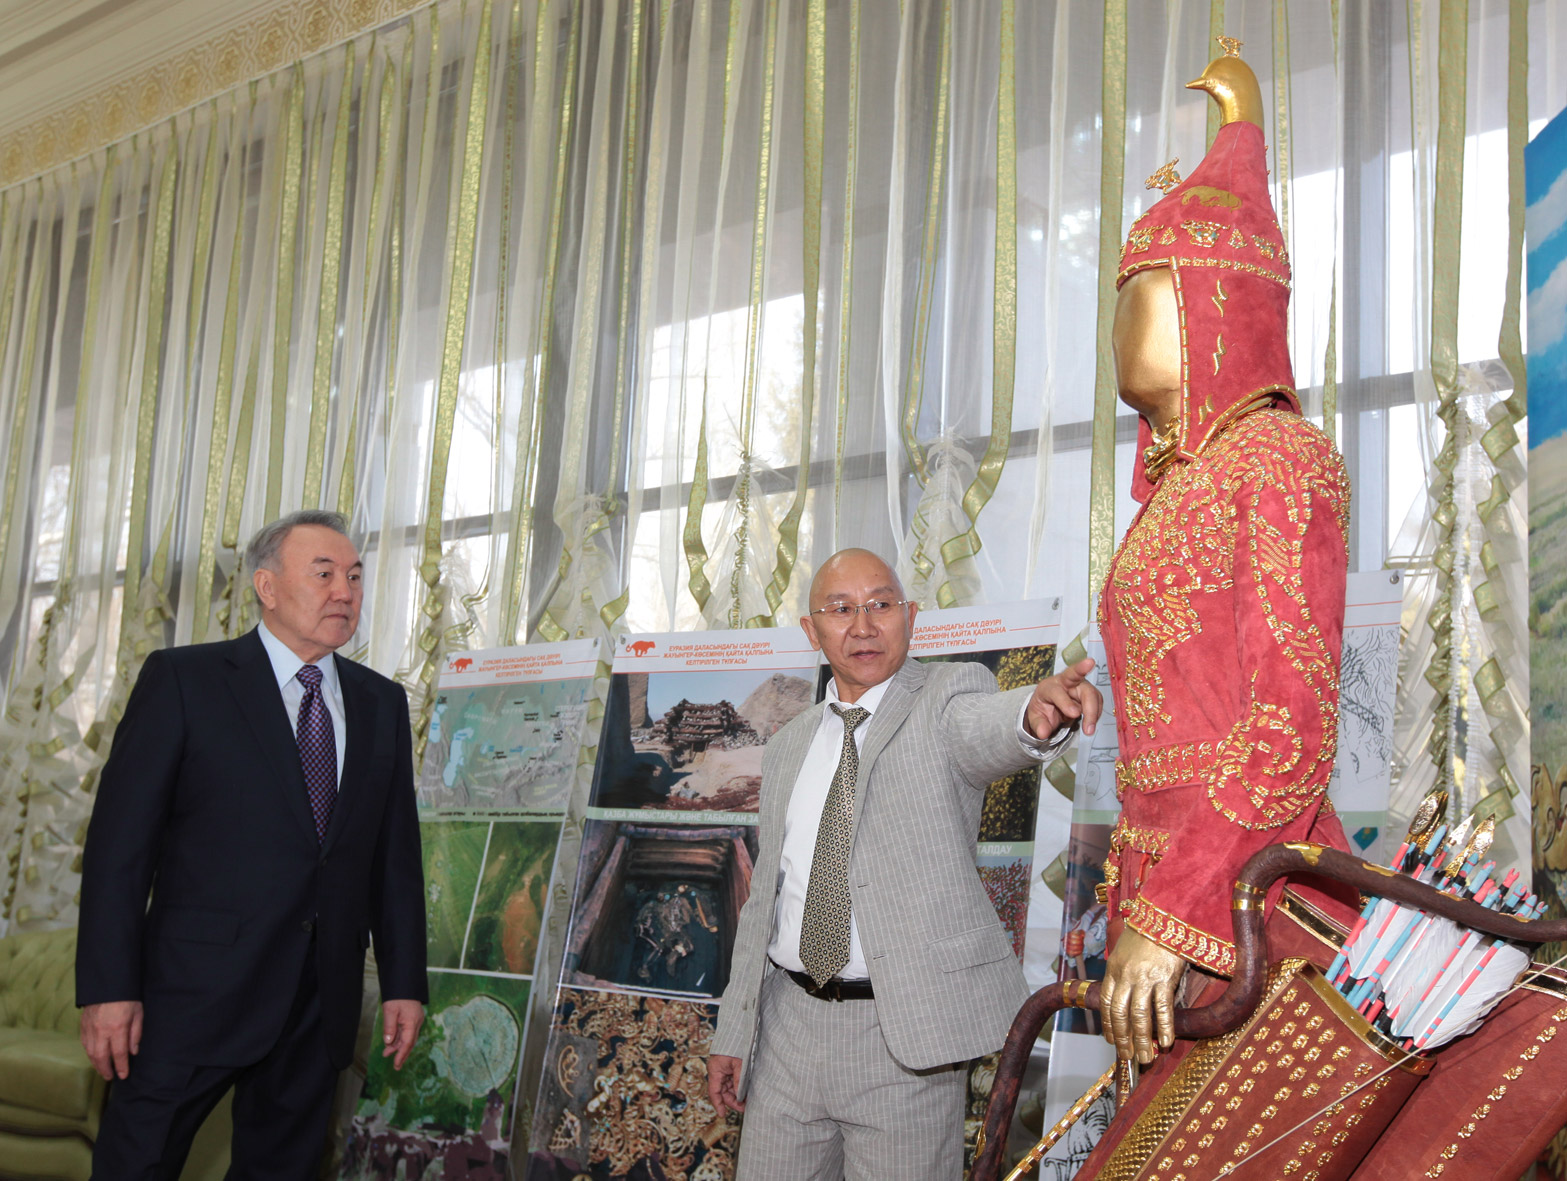 Kyrm Altynbekov shows President Nursultan Nazarbayev his family's reconstruction of the garb of a Saka warrior. Photo courtesy of Krym Altynbekov